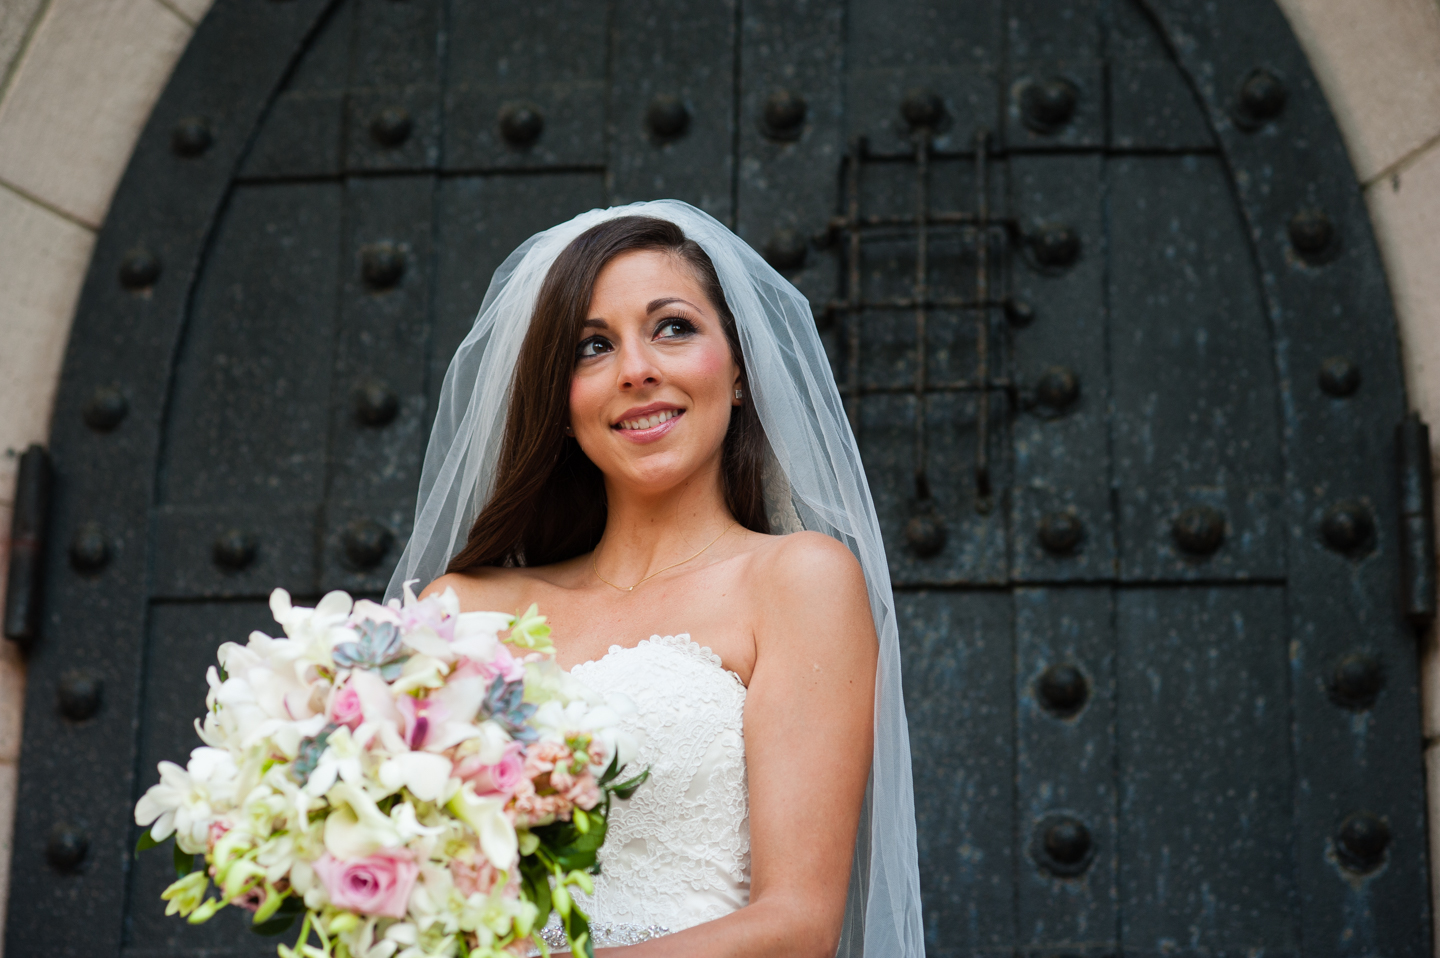 Bride with her gorgeous bouquet poses for a quick portrait